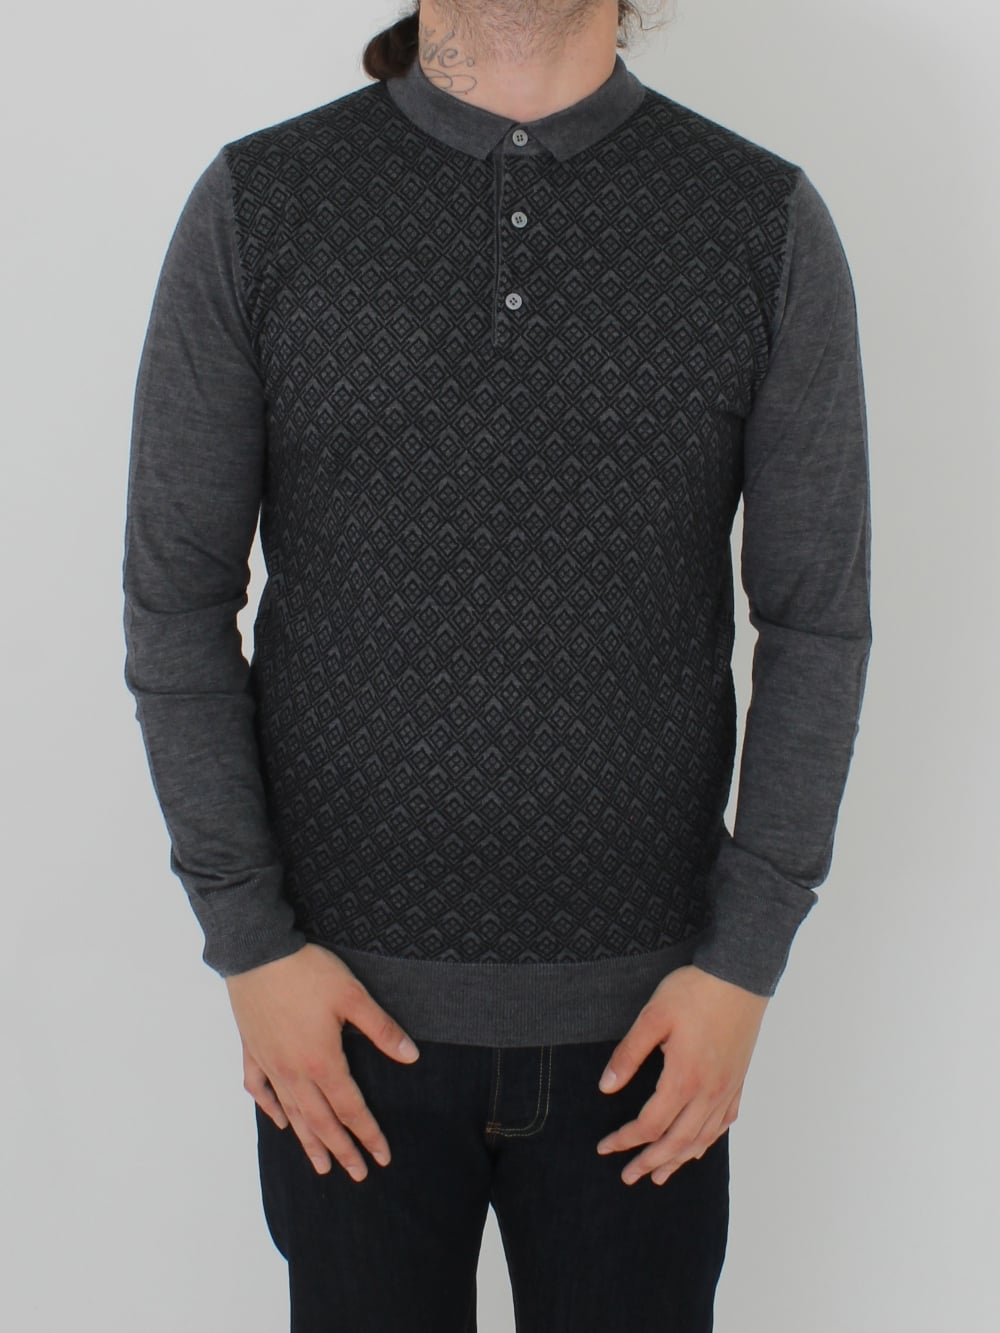 242908bea Remus Uomo Long Sleeve Knitted Polo in Steel - Northern Threads